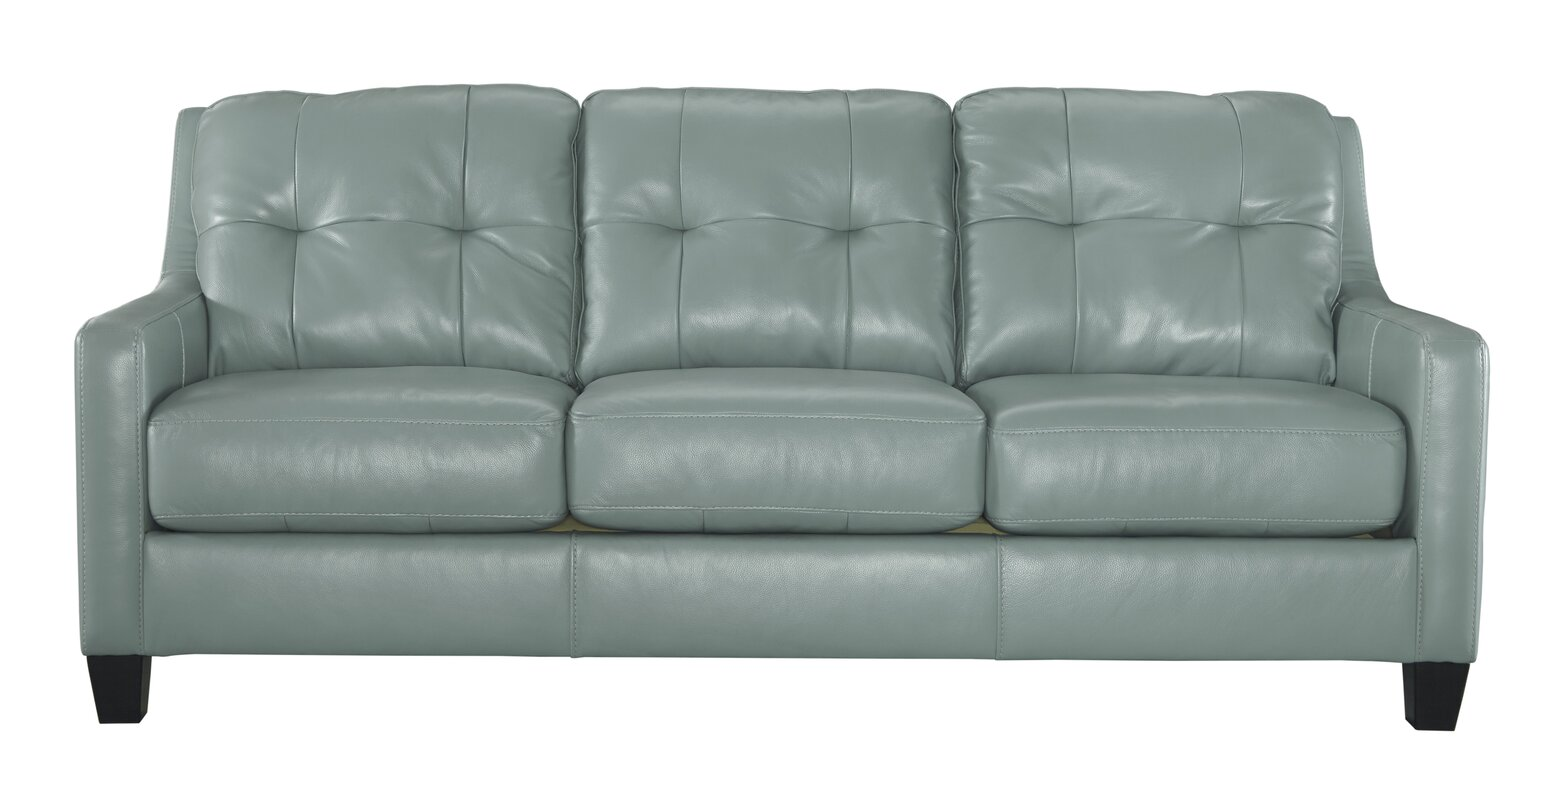 Faux Leather Sofas Youll Love Wayfair - Brushed leather sofa 2